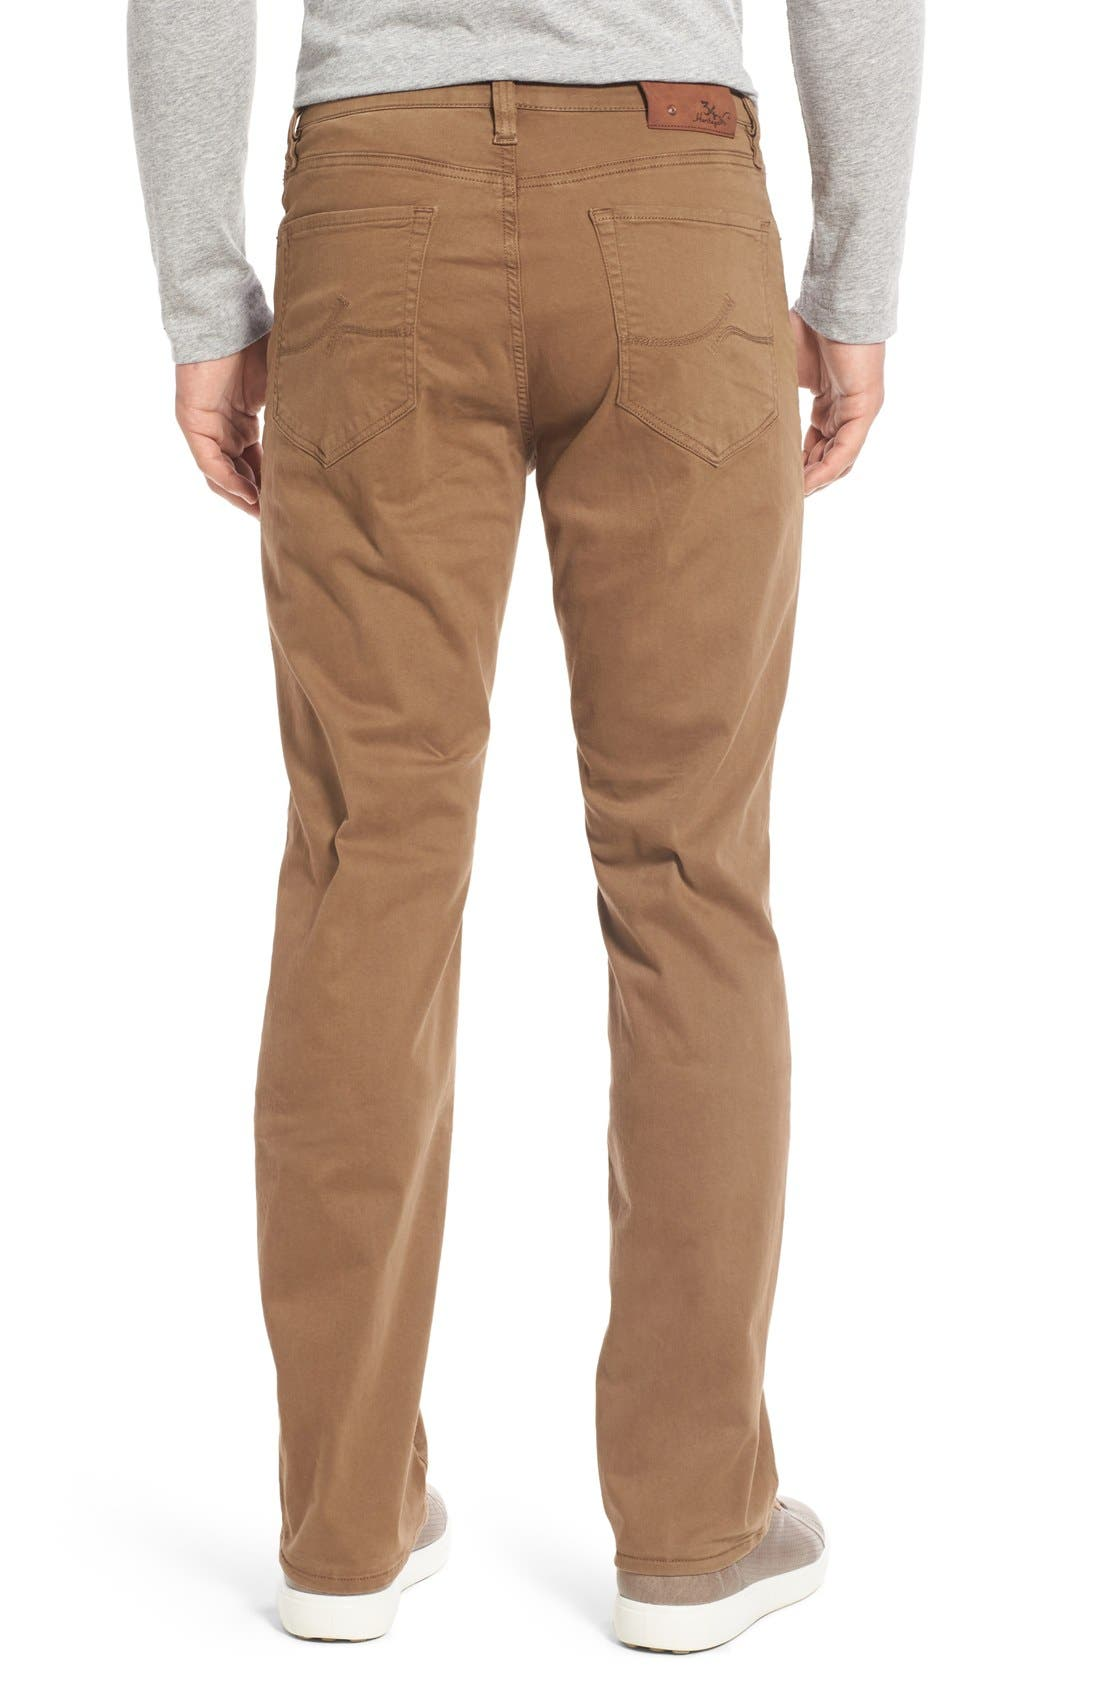 'Charisma' Relaxed Fit Jeans,                             Alternate thumbnail 4, color,